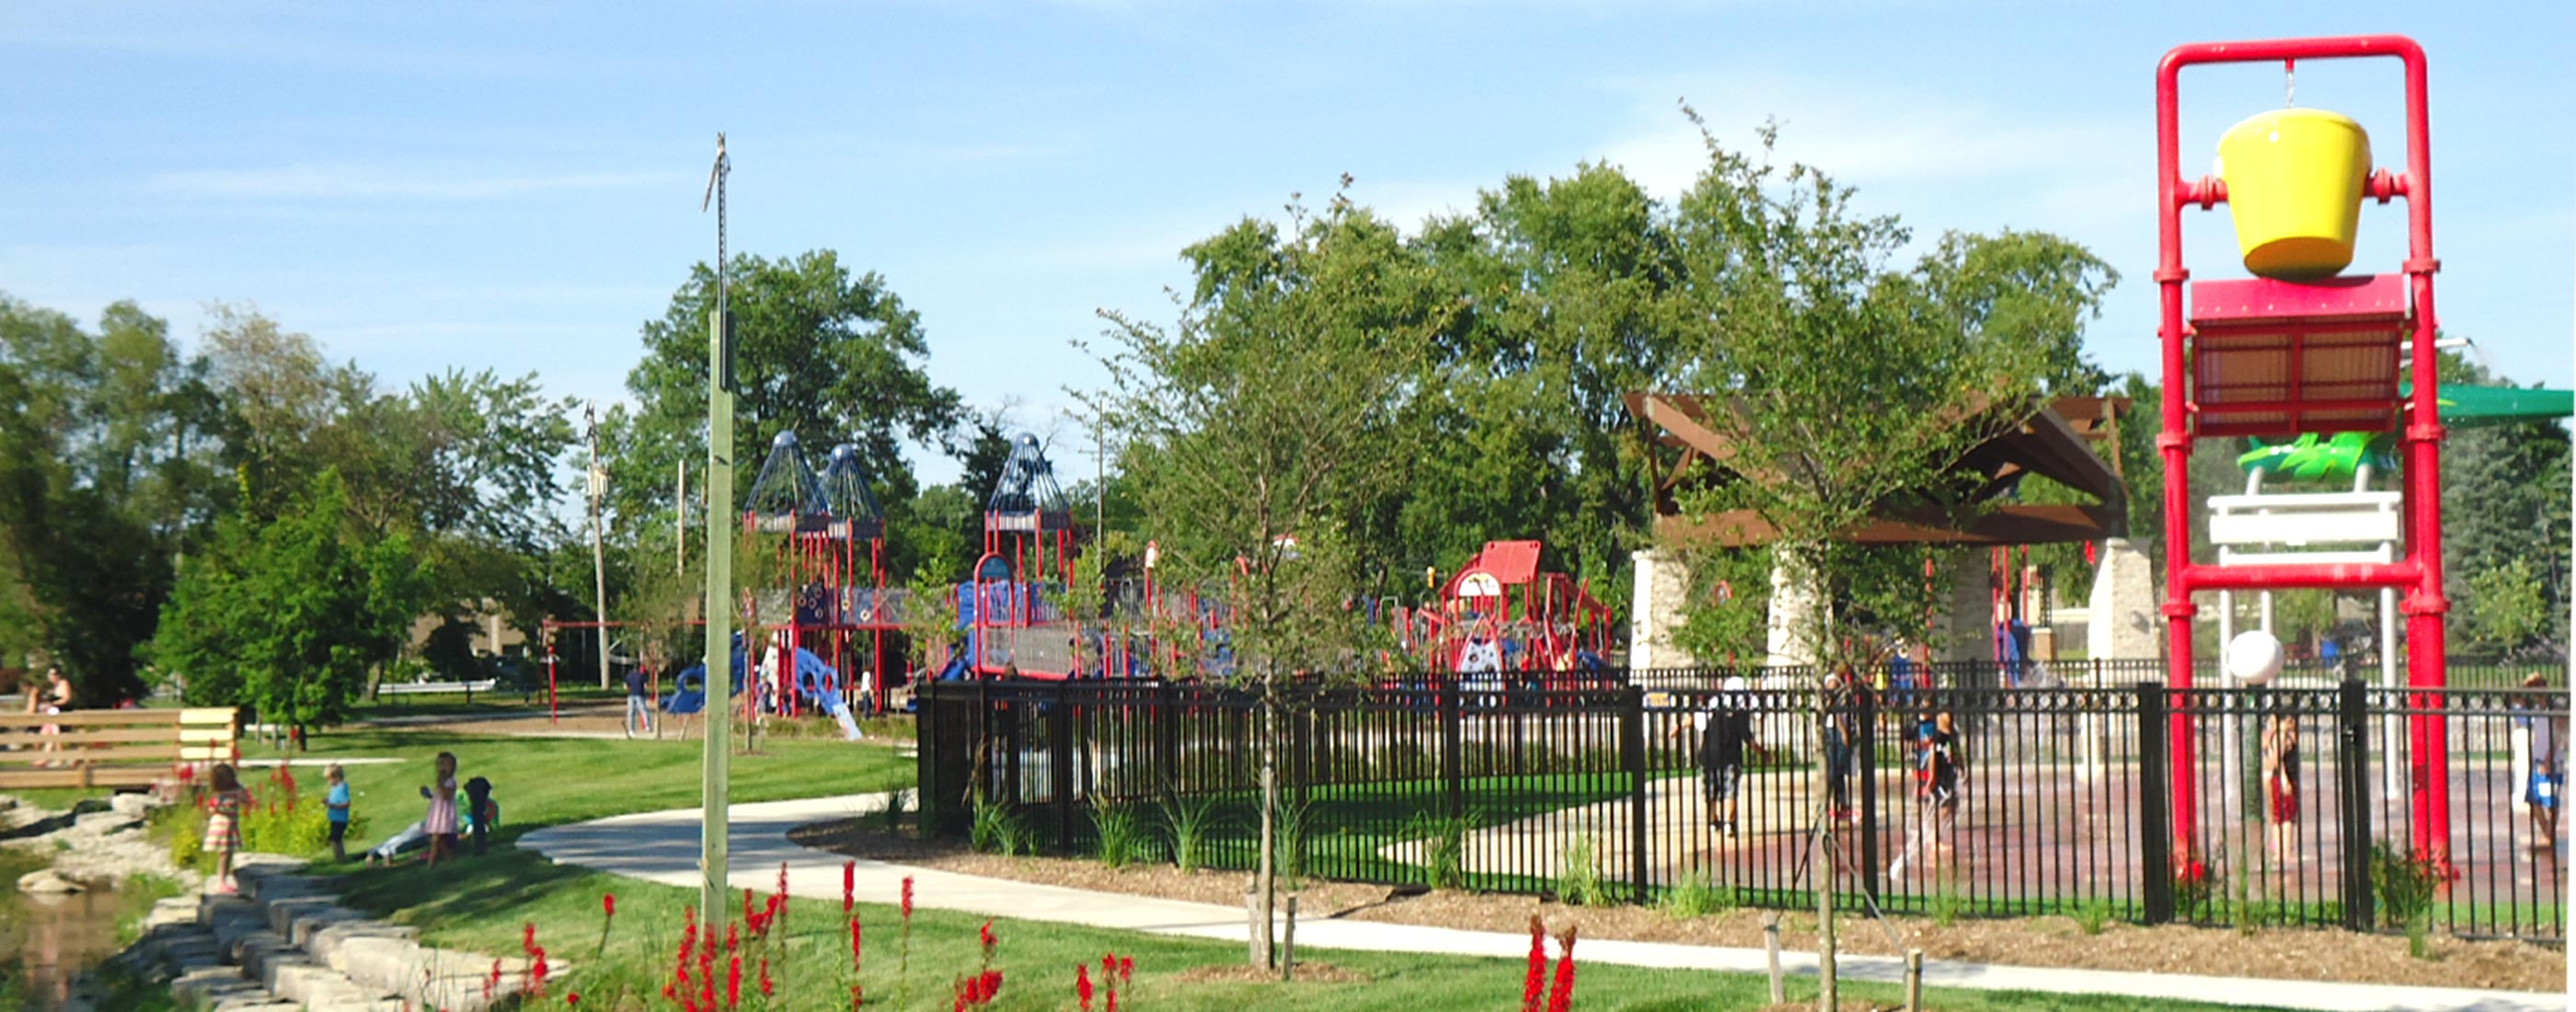 The splash pad and playground at Westland Tattan Park.